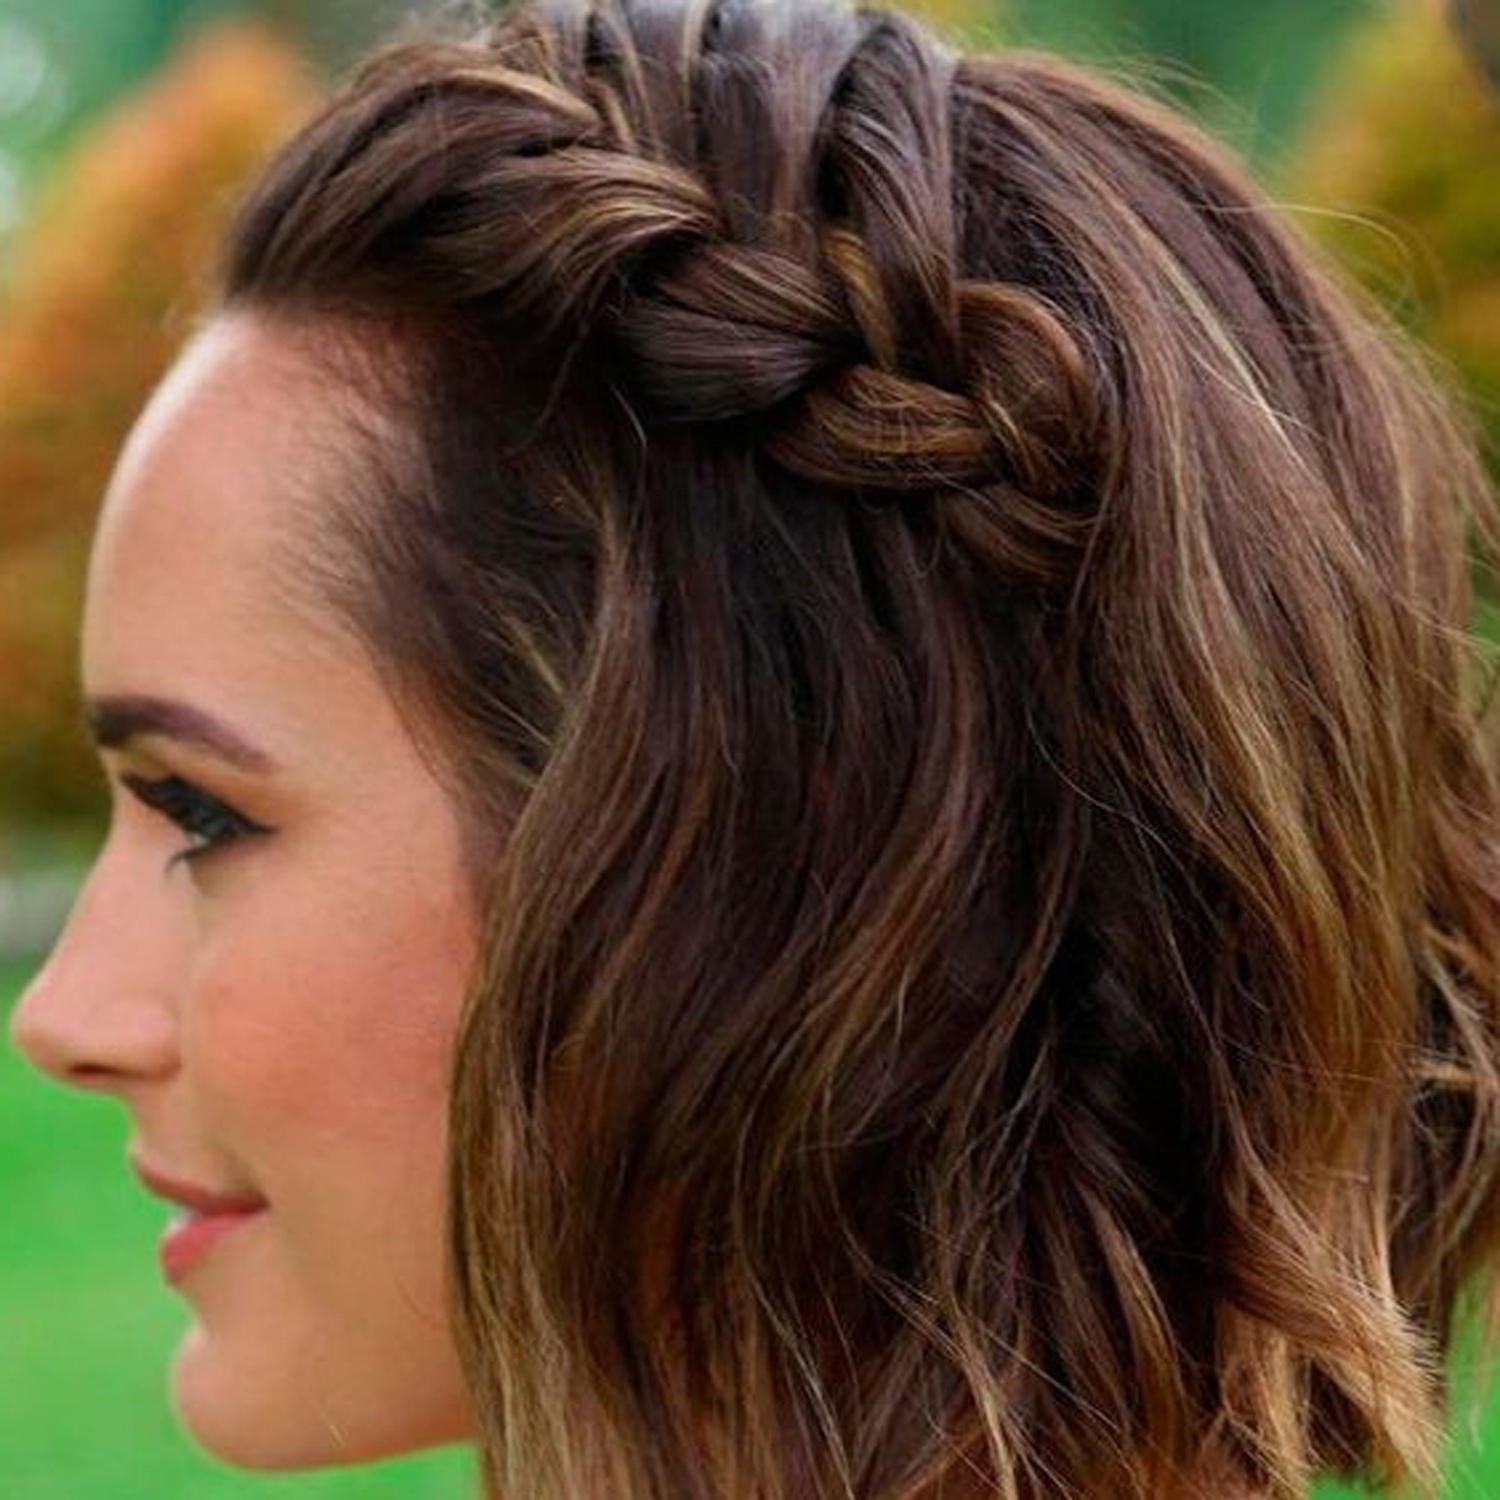 Beautyheaven Intended For Current Braided Lob Hairstyles (View 11 of 15)